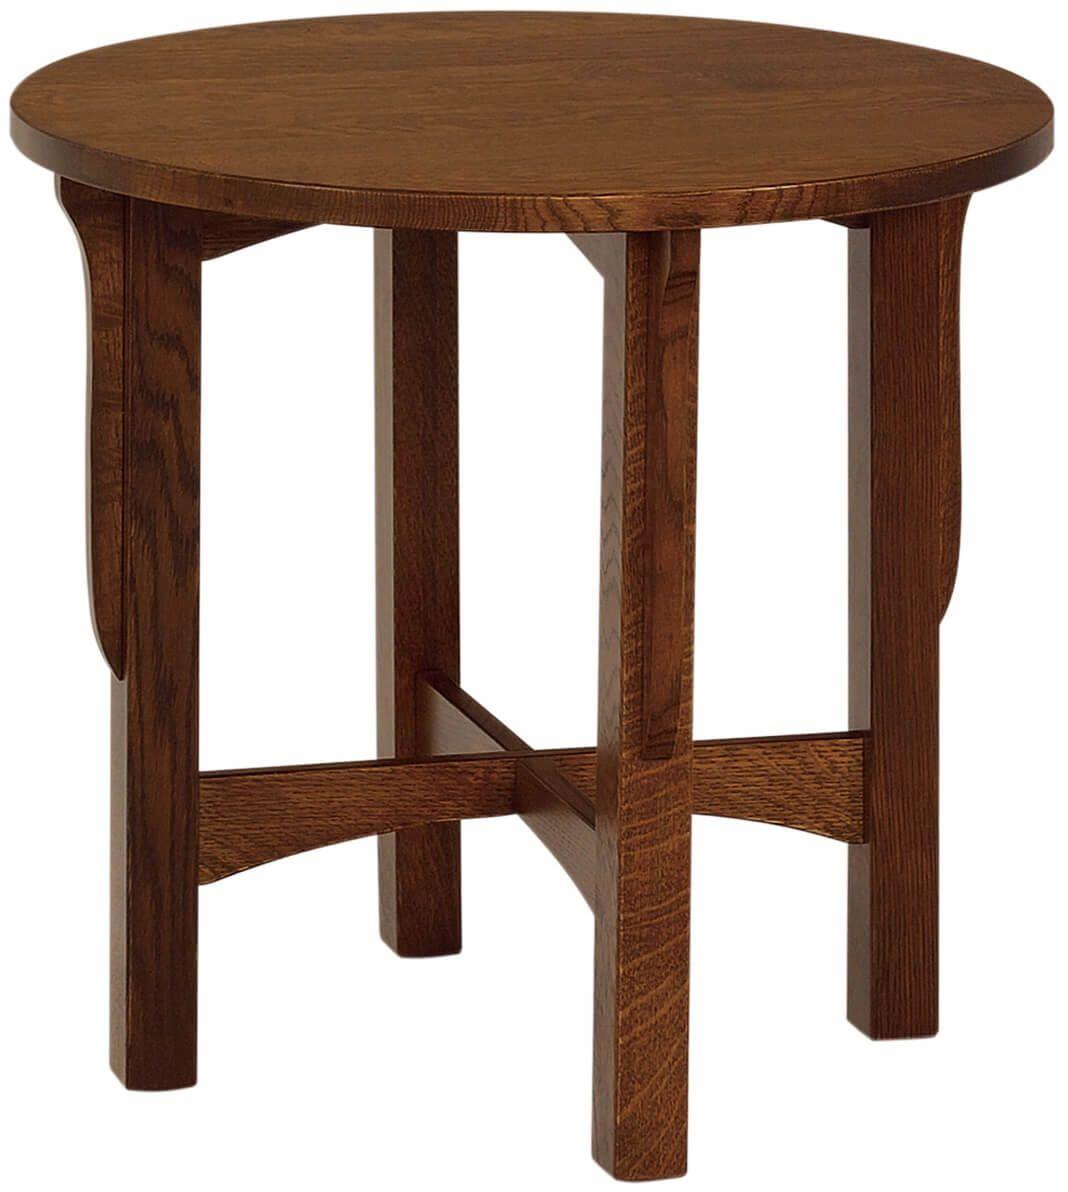 Rushmore Large Round End Table